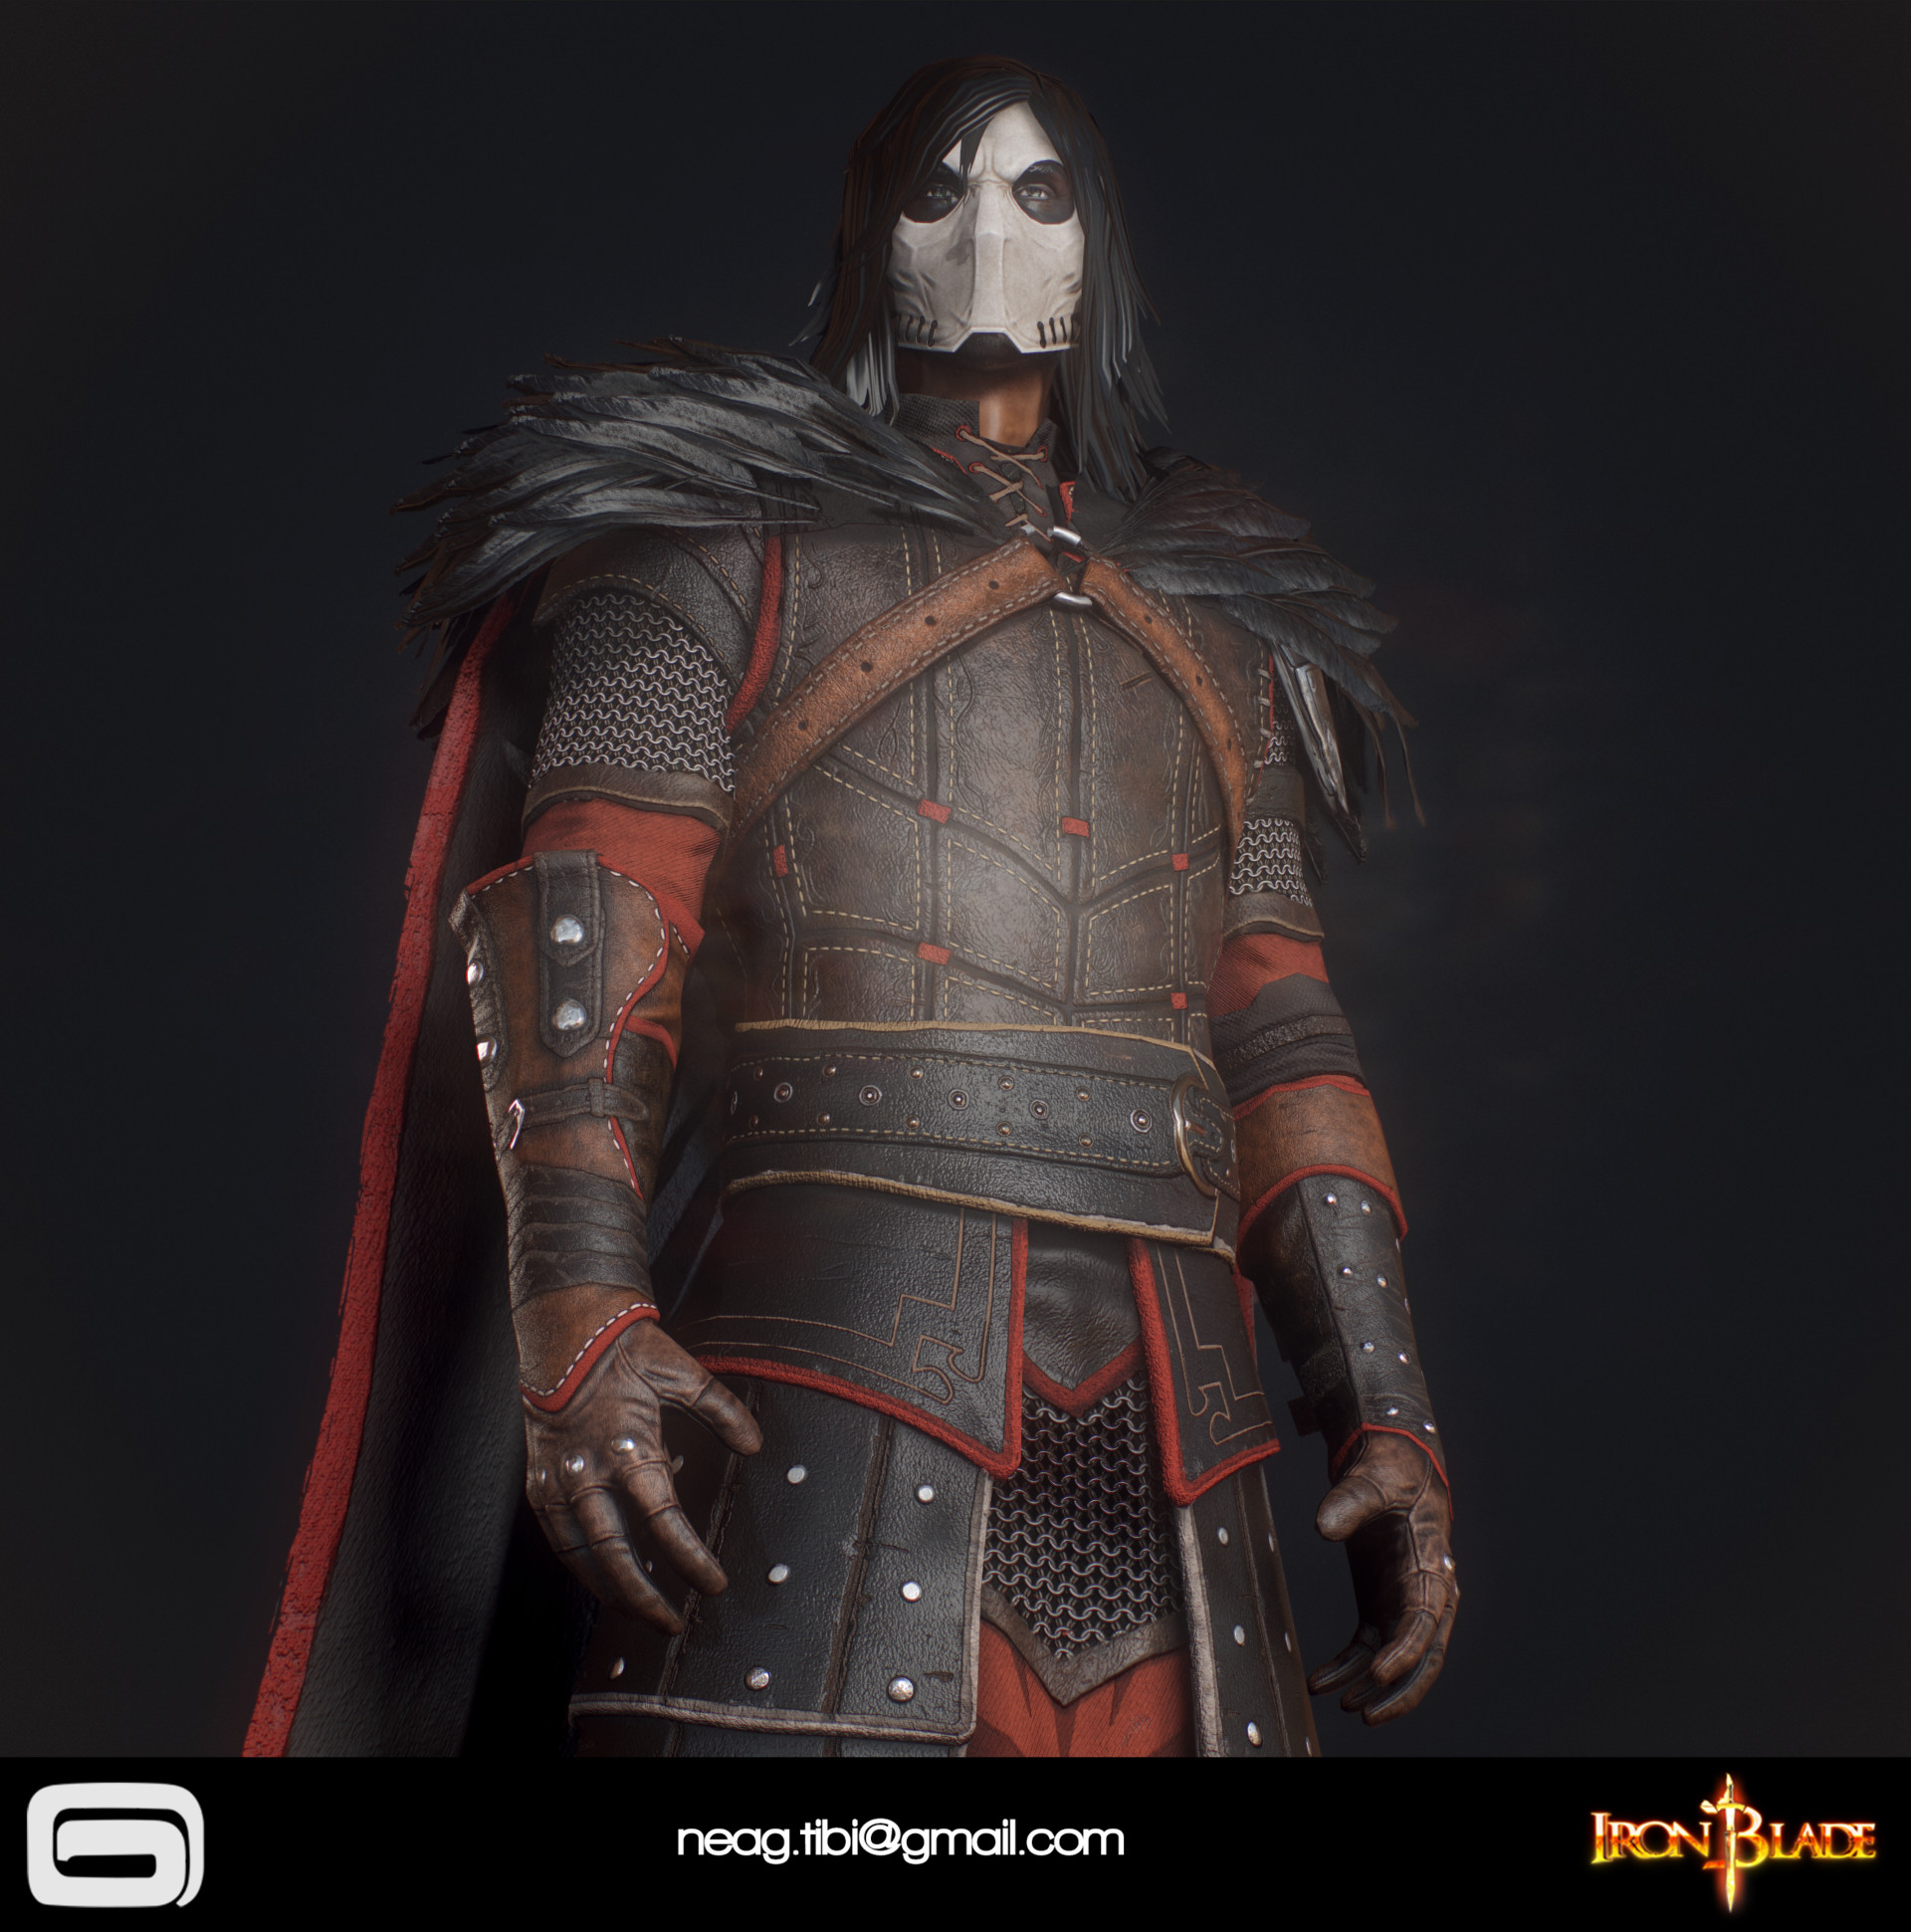 Tibi neag tibi neag iron blade mc armor 11c low poly 04